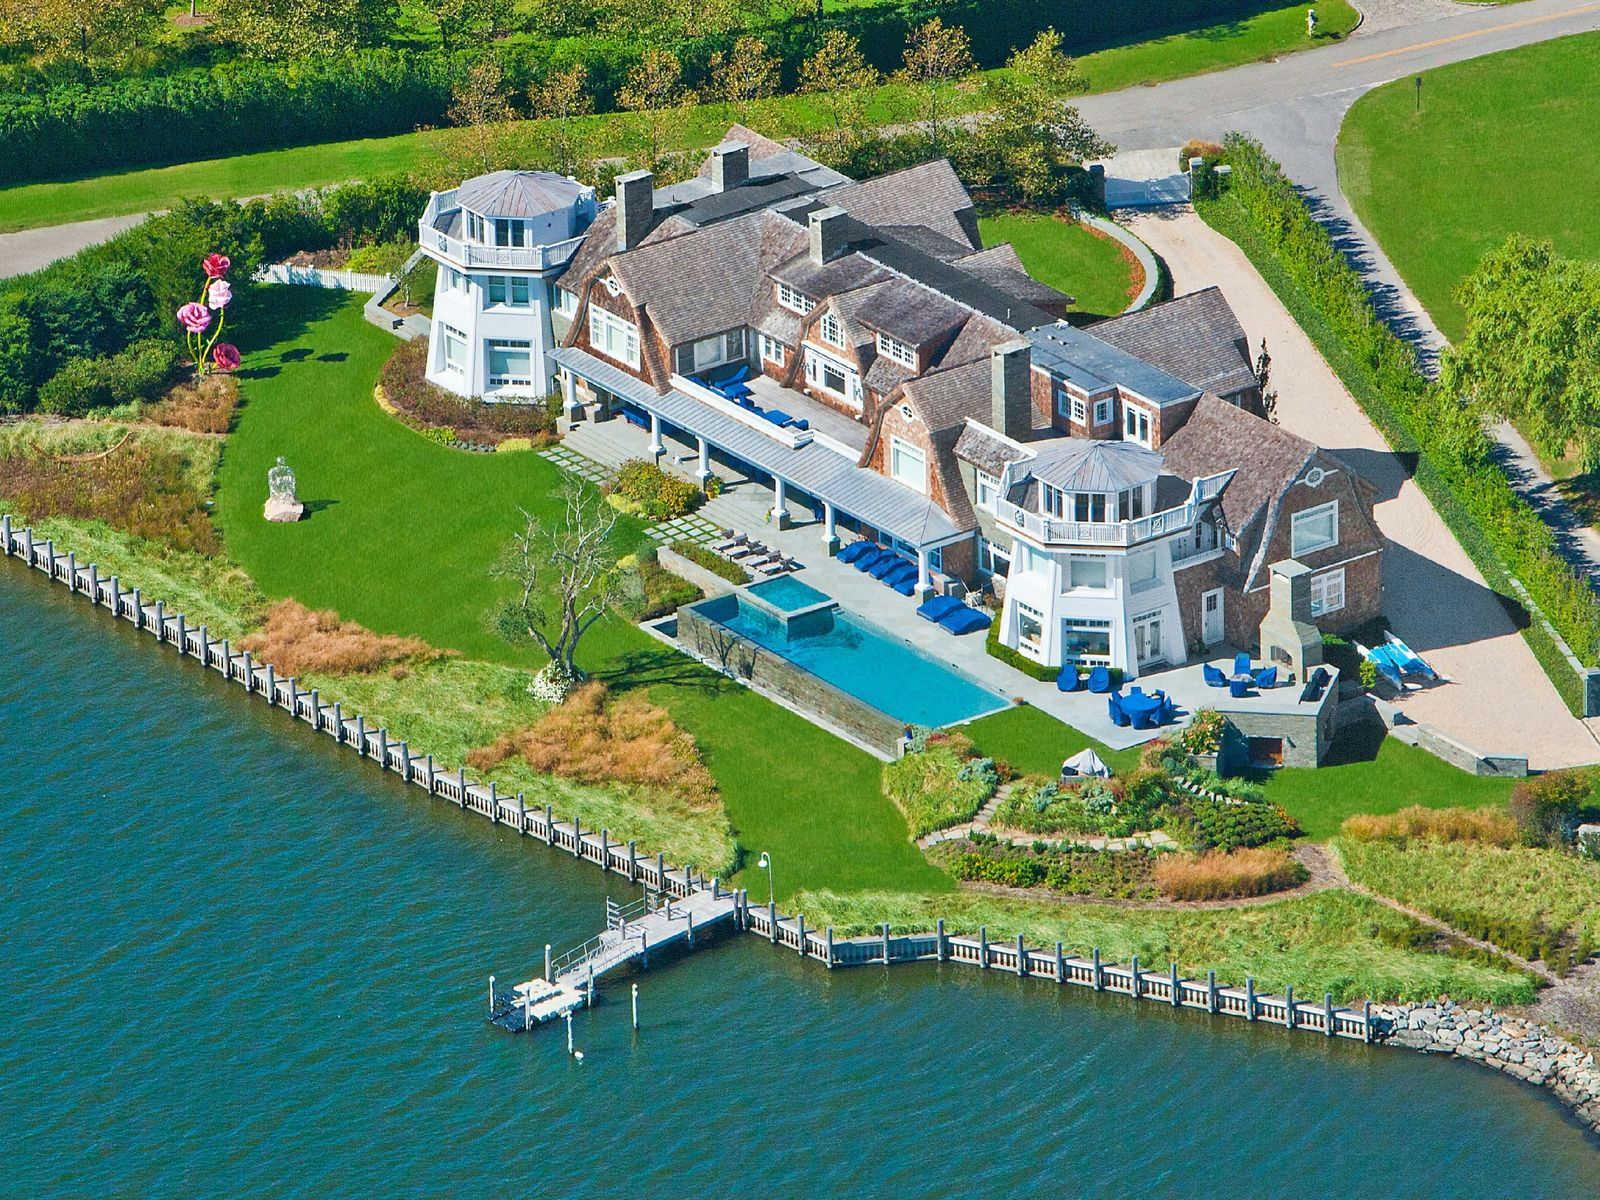 Rose Hill Point - Water Mill, Water Mill NY Single Family Home - Hamptons Real Estate